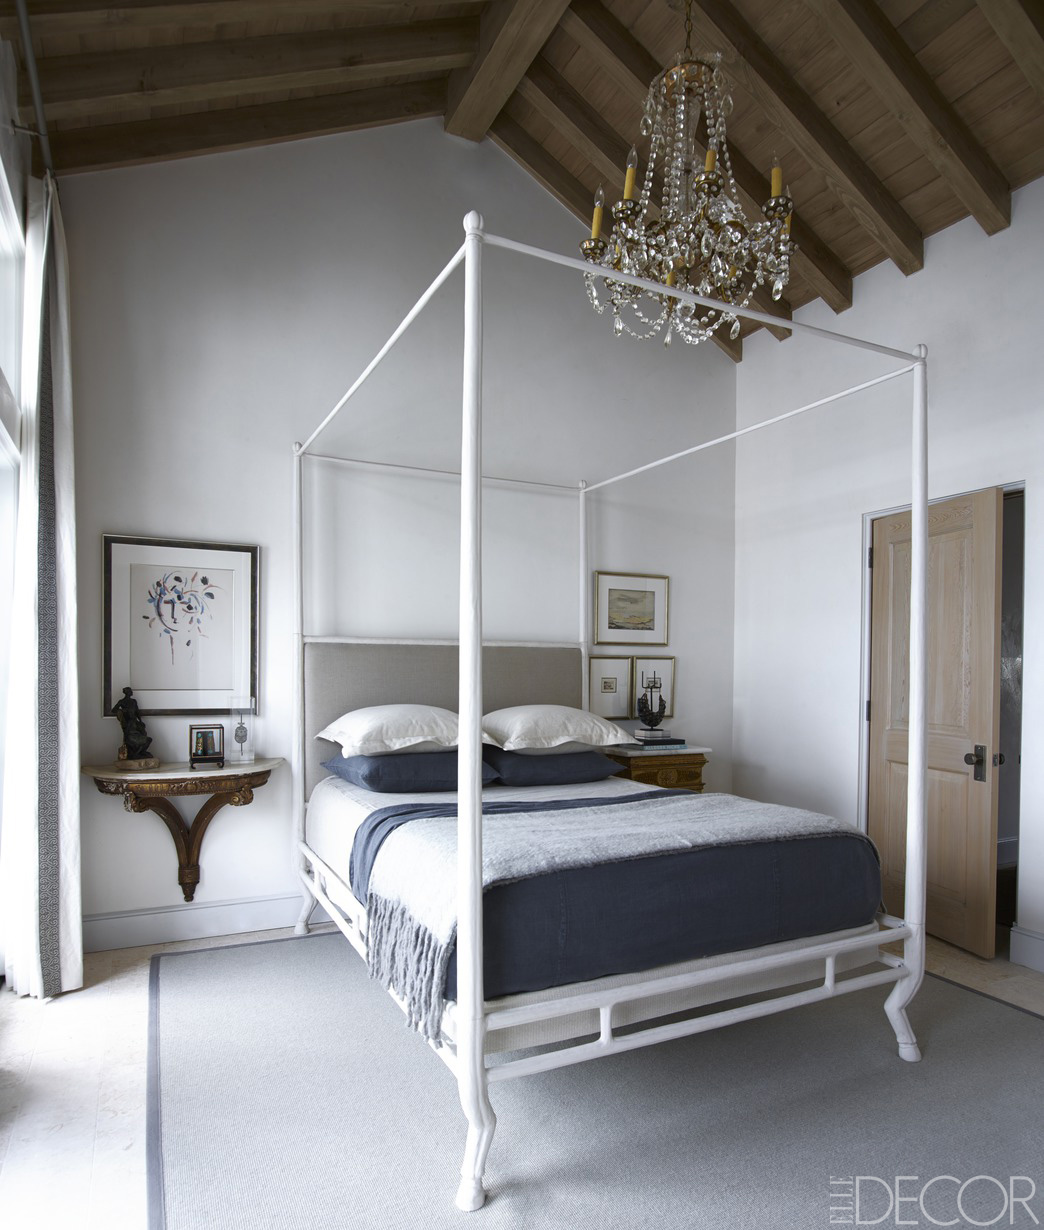 Elle Design: 100+ Bedroom Decorating Ideas & Designs